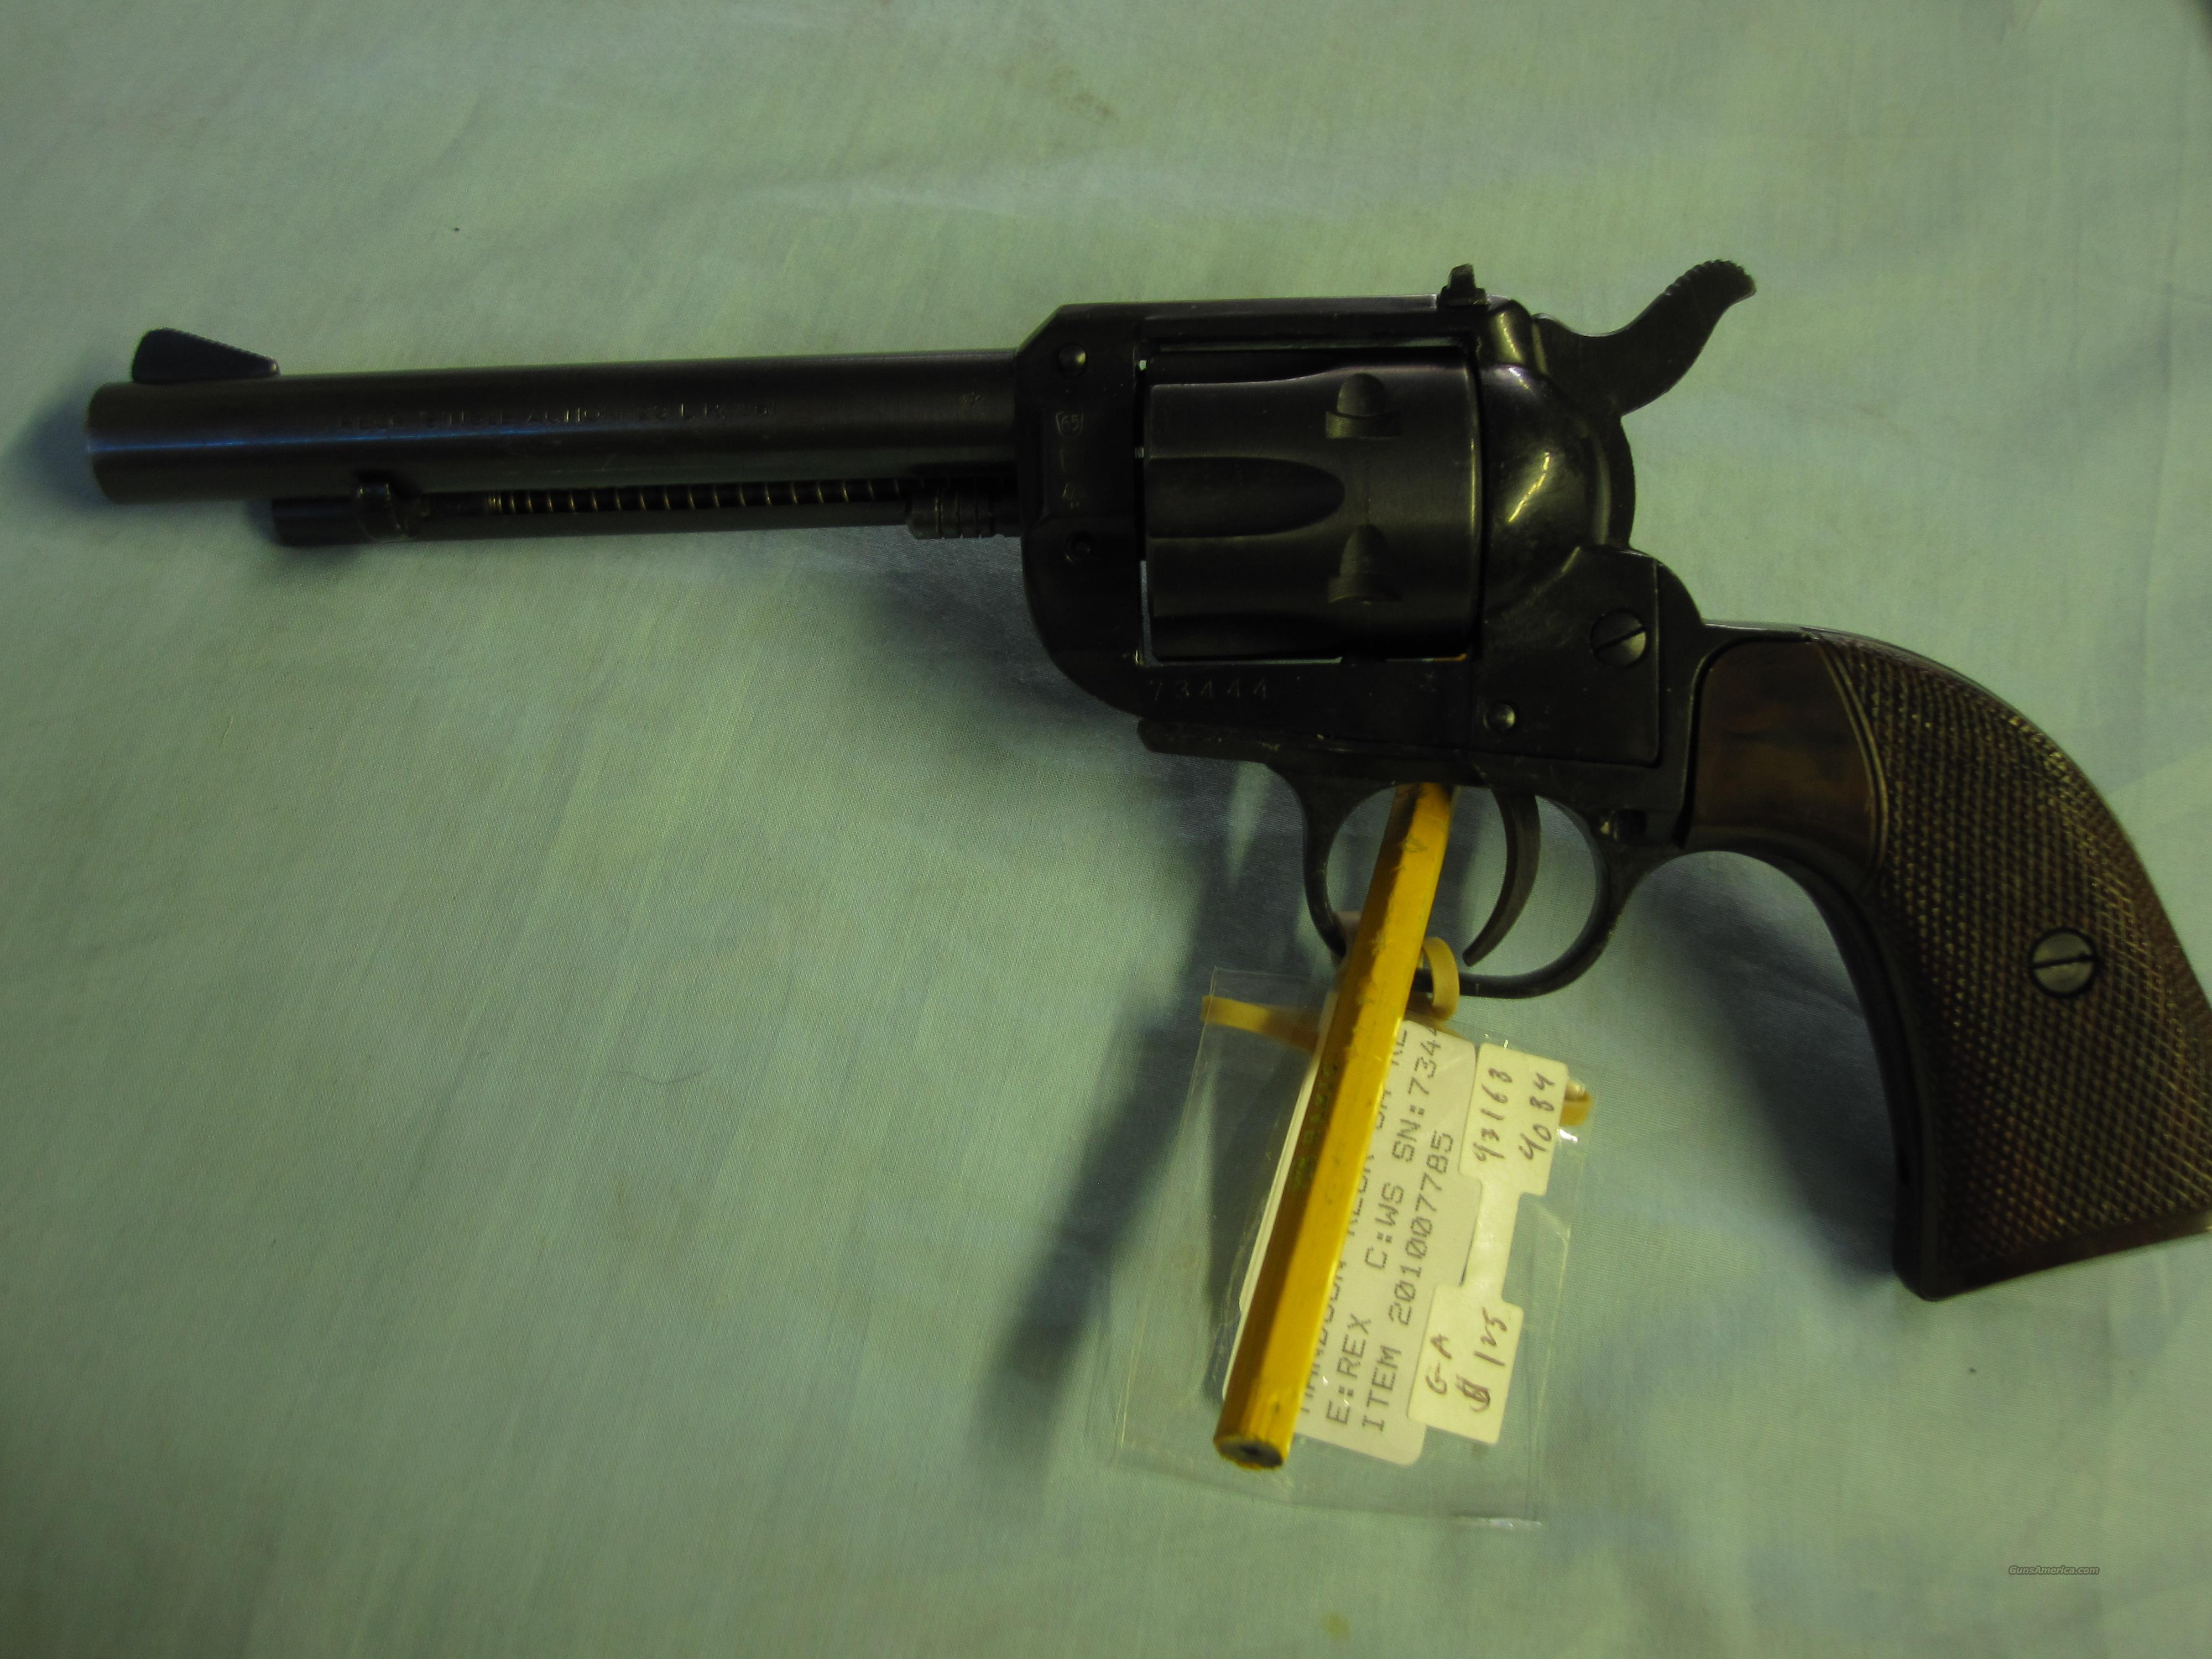 Reck .22 lr cal  (made in Germany) cowboy action revlver  Guns > Pistols > Cowboy Action Pistol Misc.